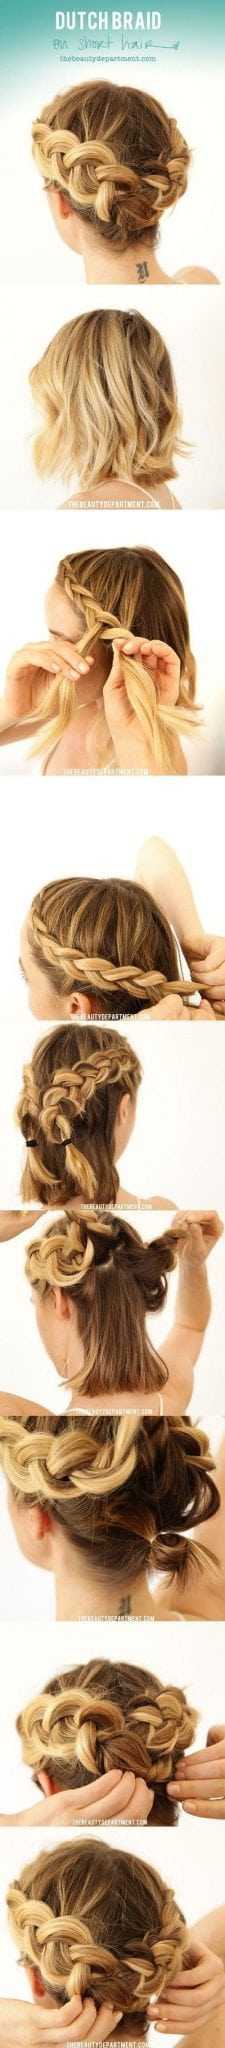 [ad_1]  Crown Braid For Bob Length Hair Tutorial therighthairstyle… Source by buzzfeeduk [ad_2]  …